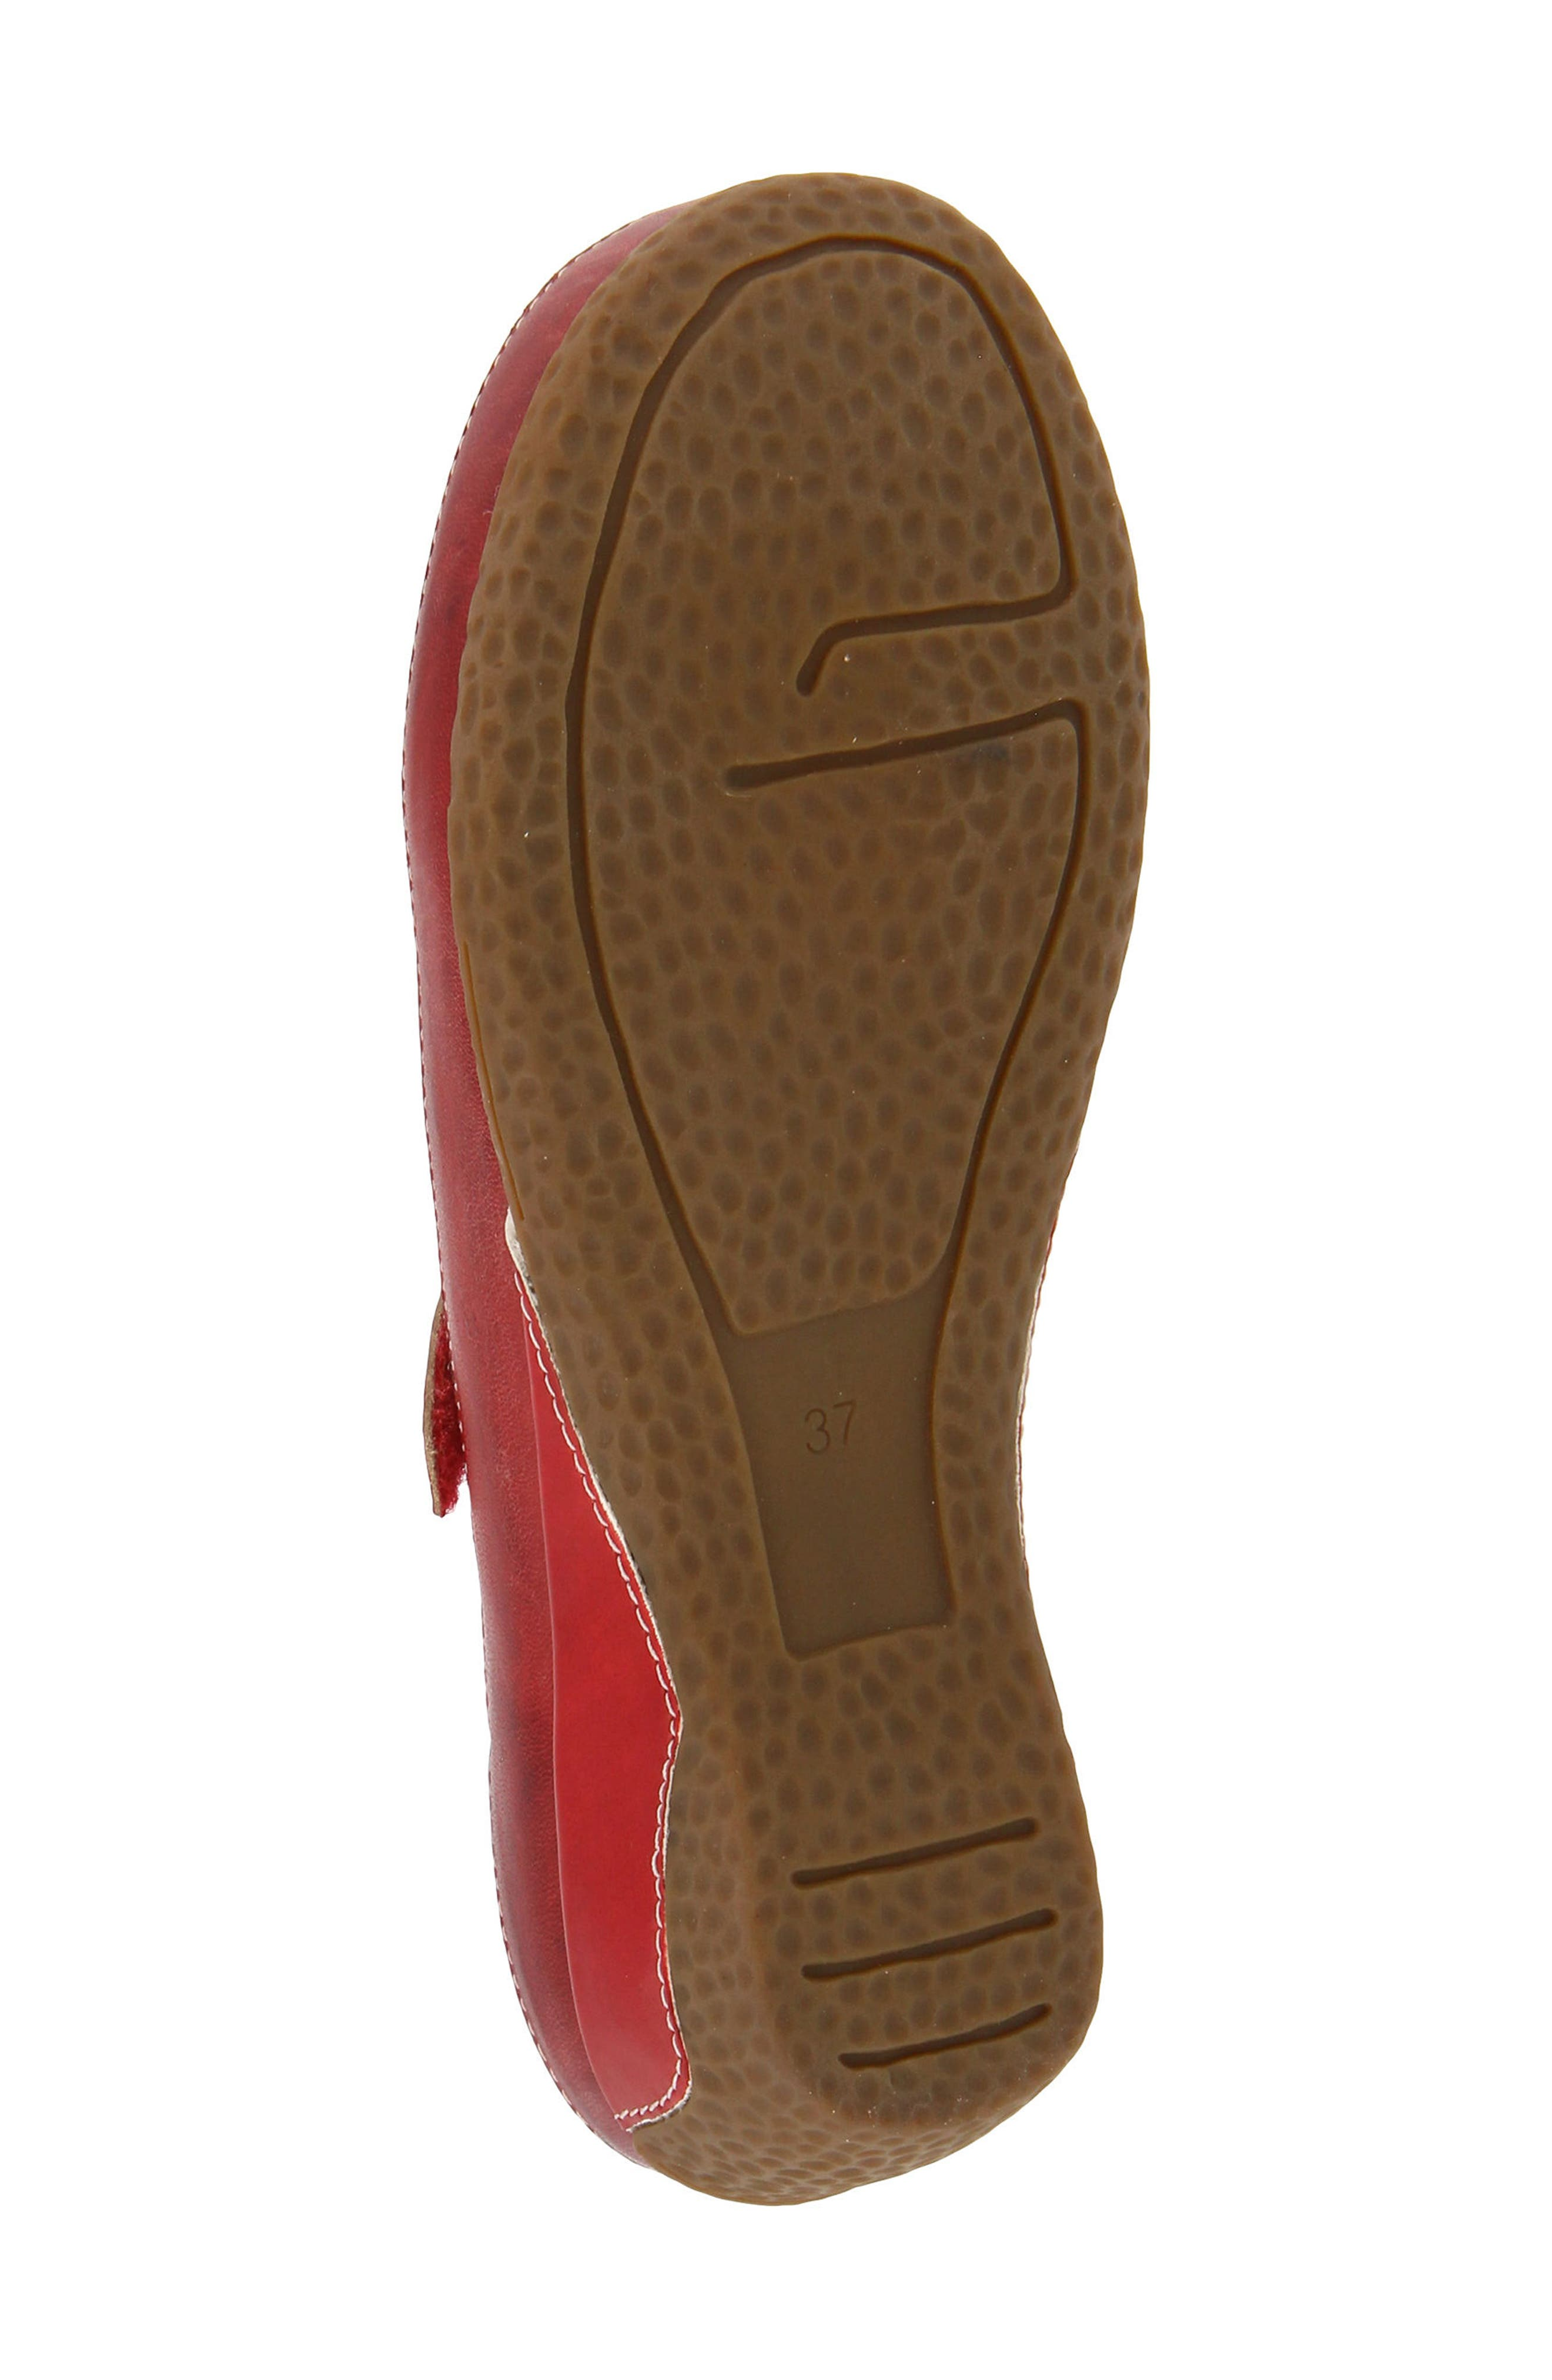 Finlandia Pump,                             Alternate thumbnail 5, color,                             RED LEATHER